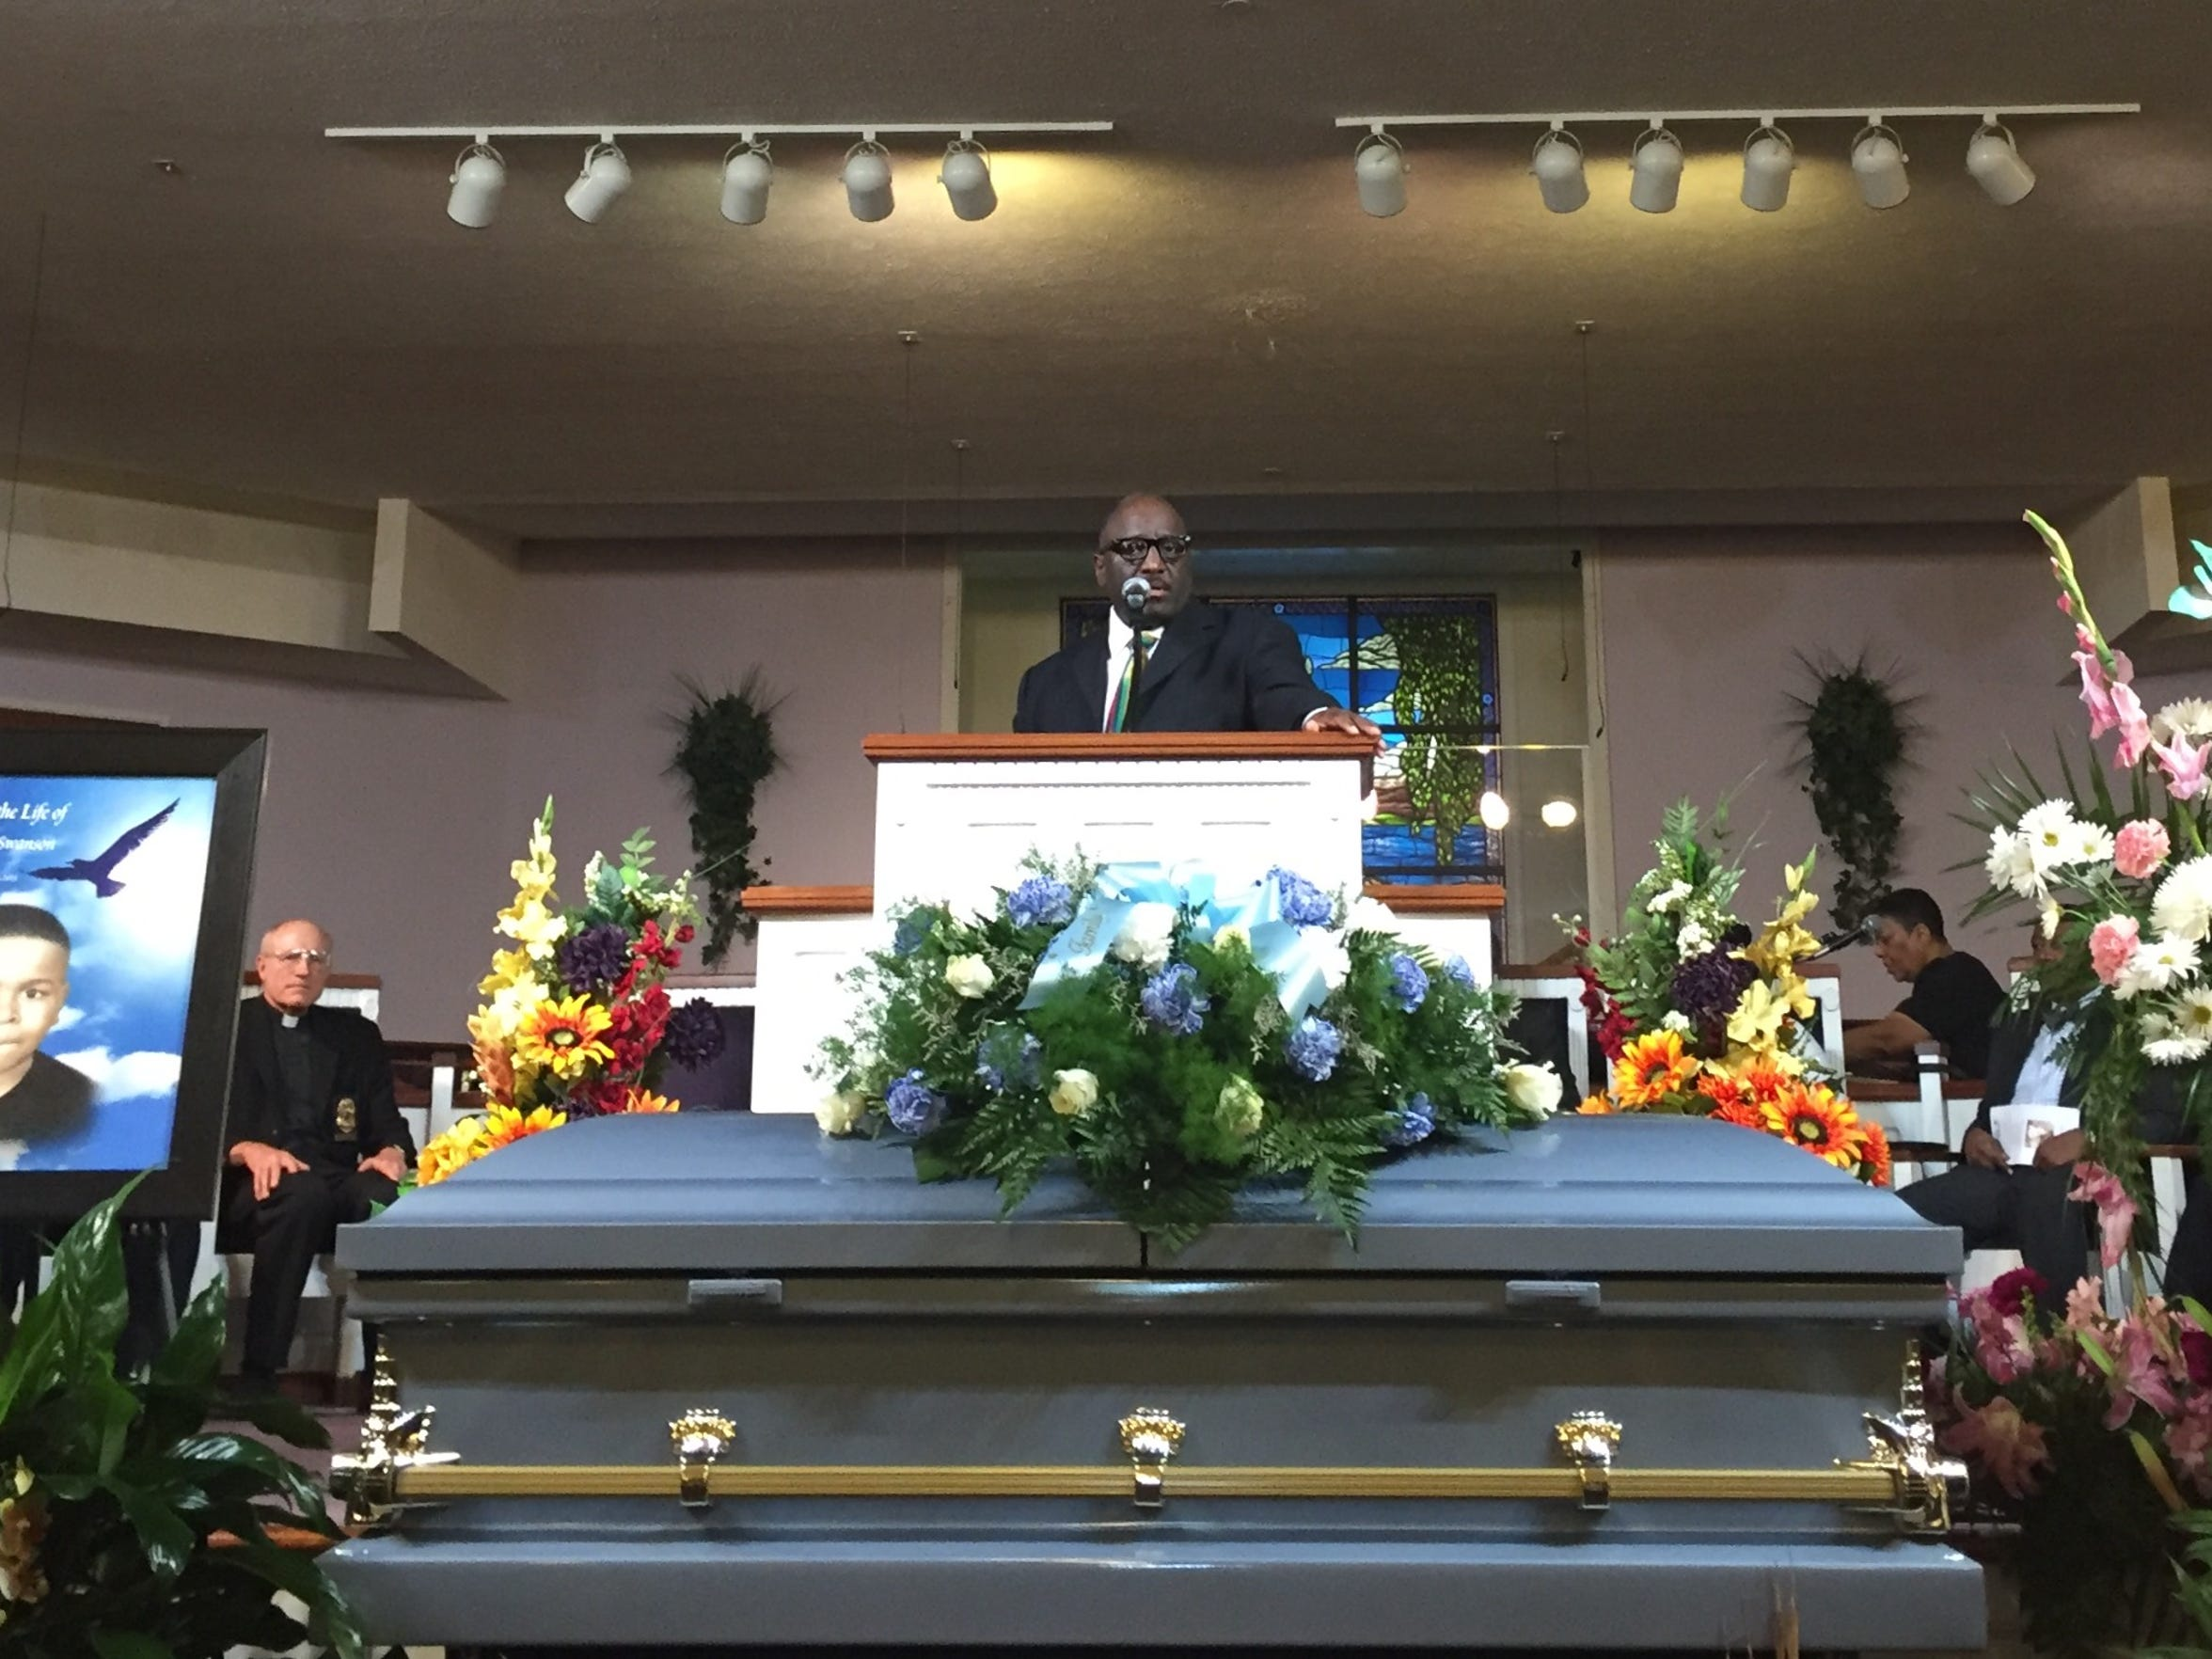 Chaplain David L. Coatie of the Indianapolis Metropolitan Police Department spoke at the funeral for Deshaun Swanson on Sept. 28, 2015. Deshaun, 10, was gunned down Sept. 19.